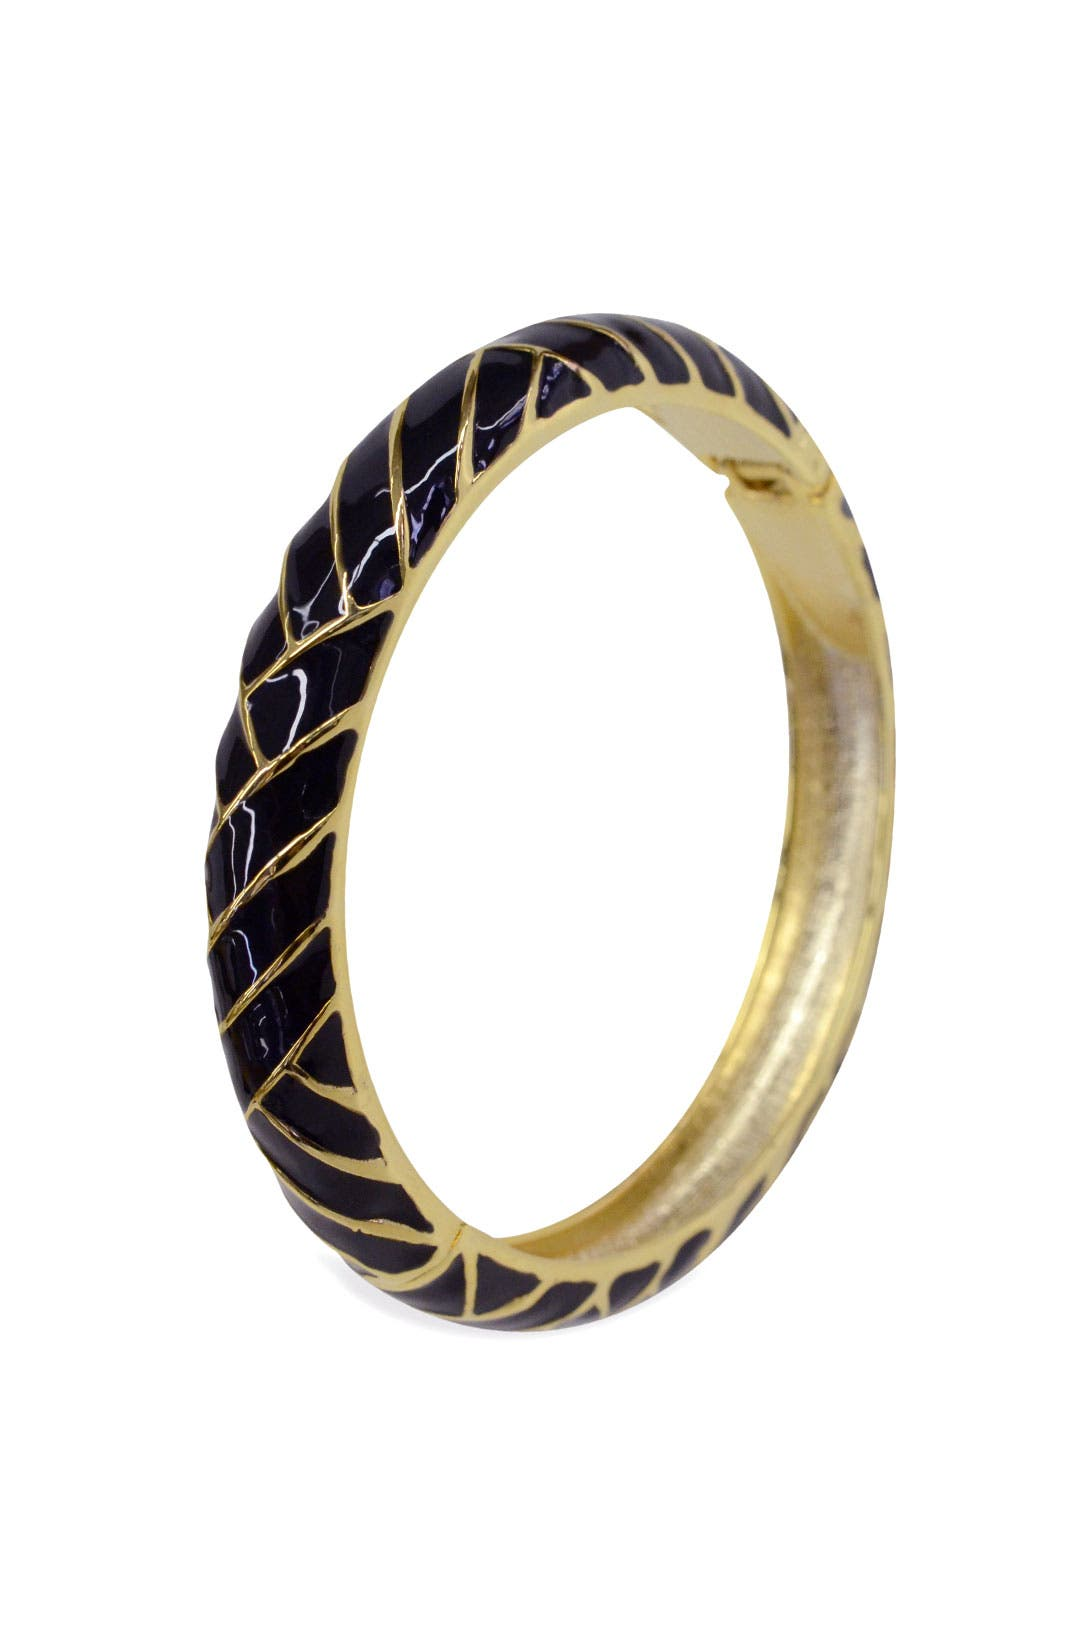 Black Herringbone Bangle by Cinder & Charm